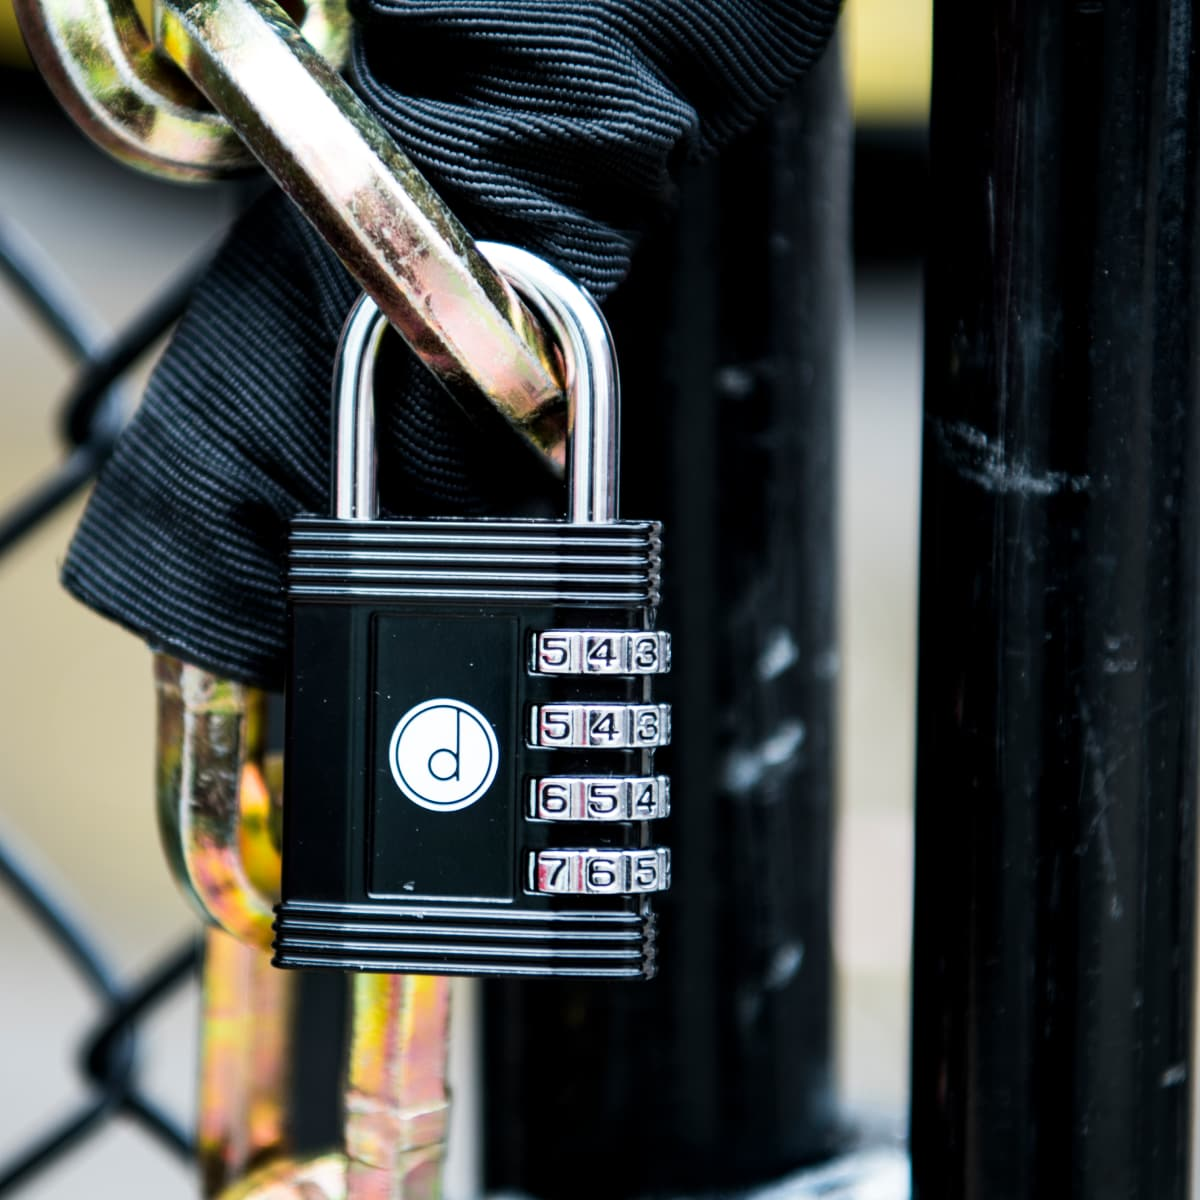 df87c9e9b8d1 The Best Padlocks of 2019 - Reviewed Home & Outdoors